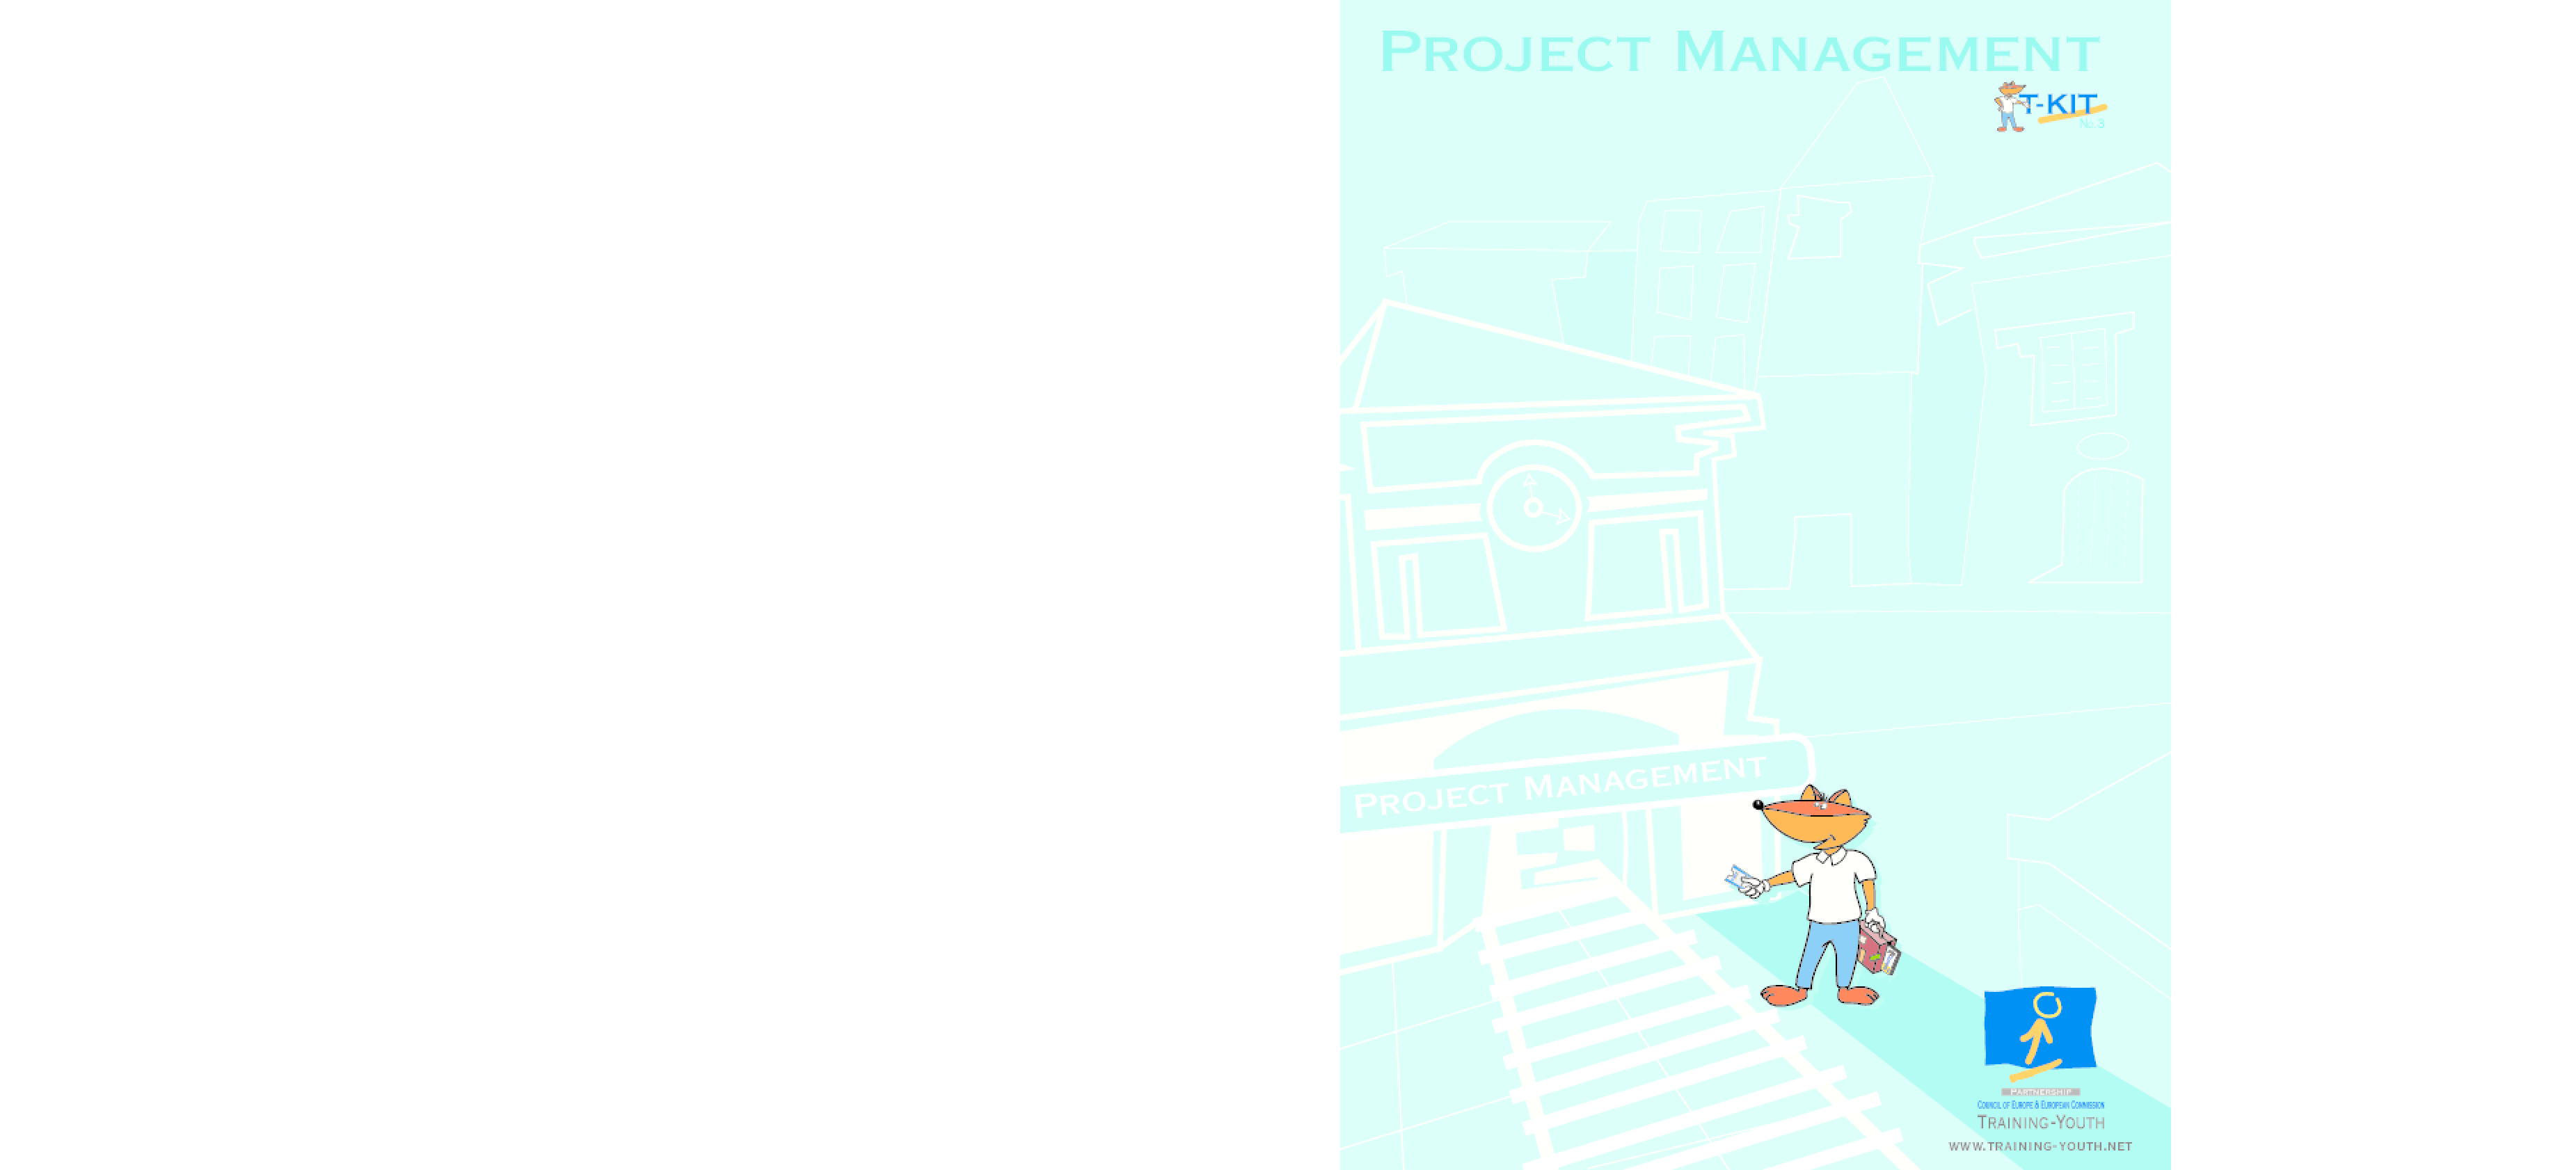 Project Management T-kit